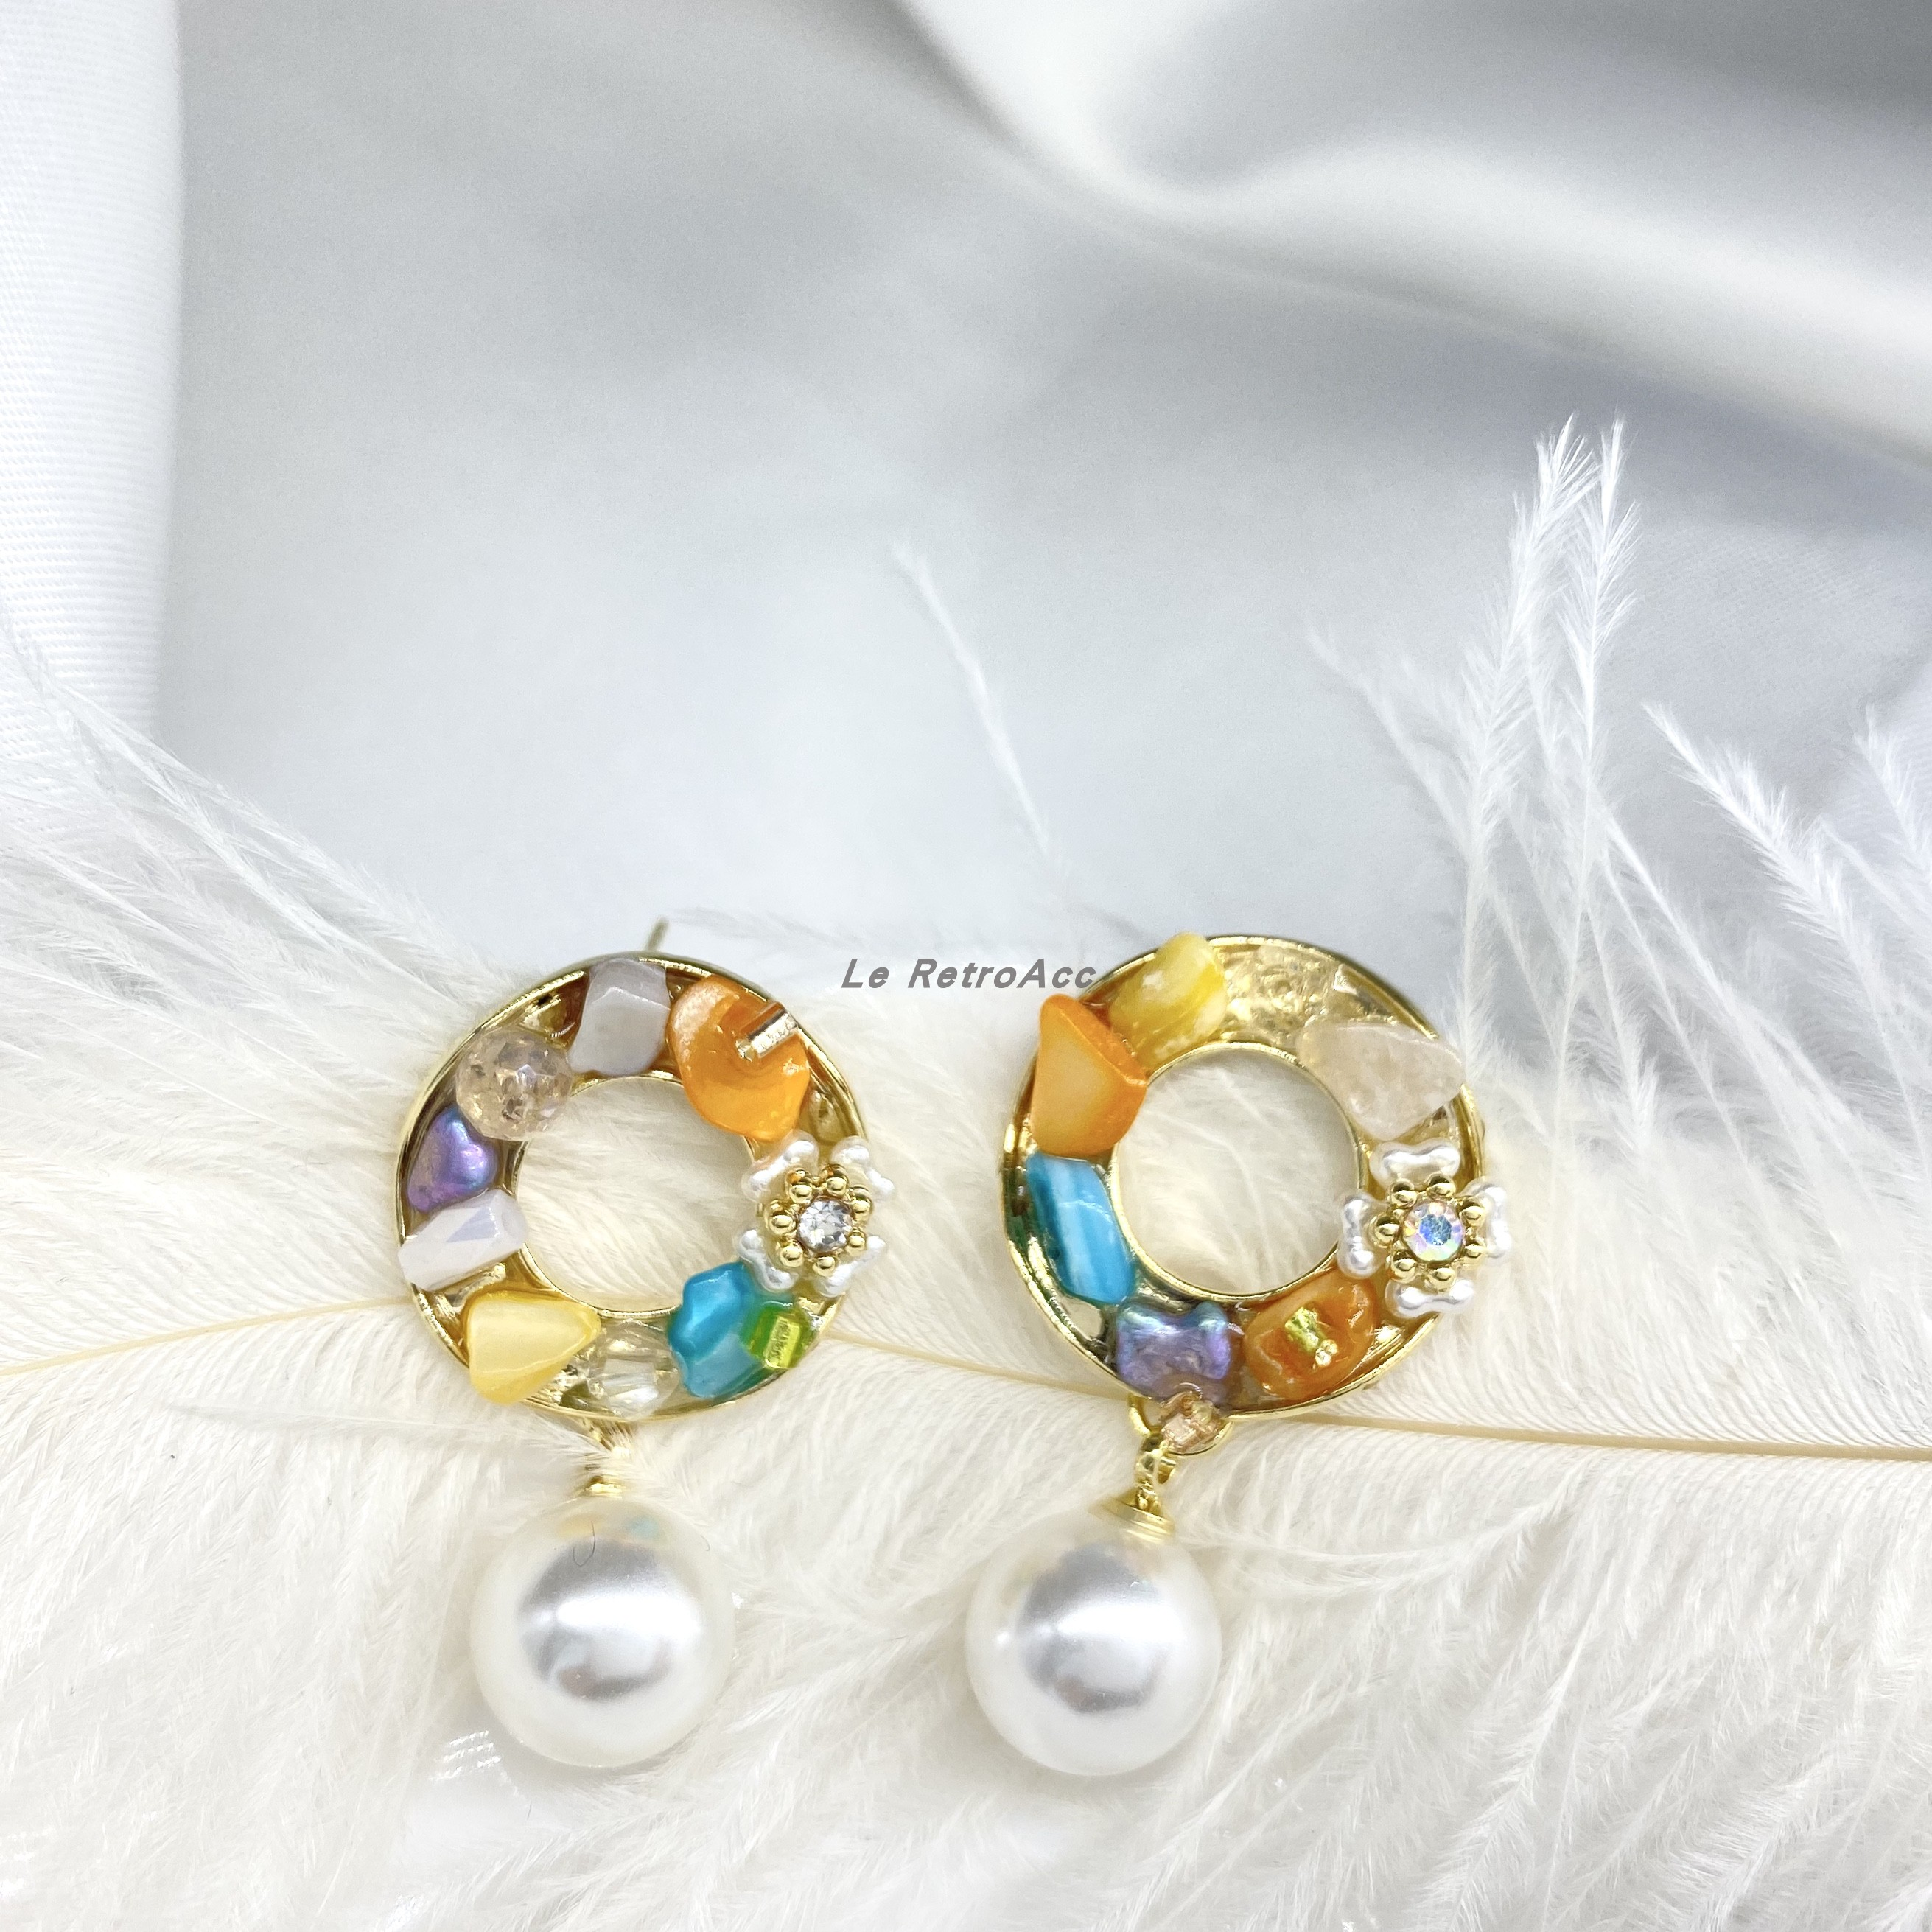 Le retroacc new off the shelf commuter shell gemstone flower pearl inlaid delicate Earrings